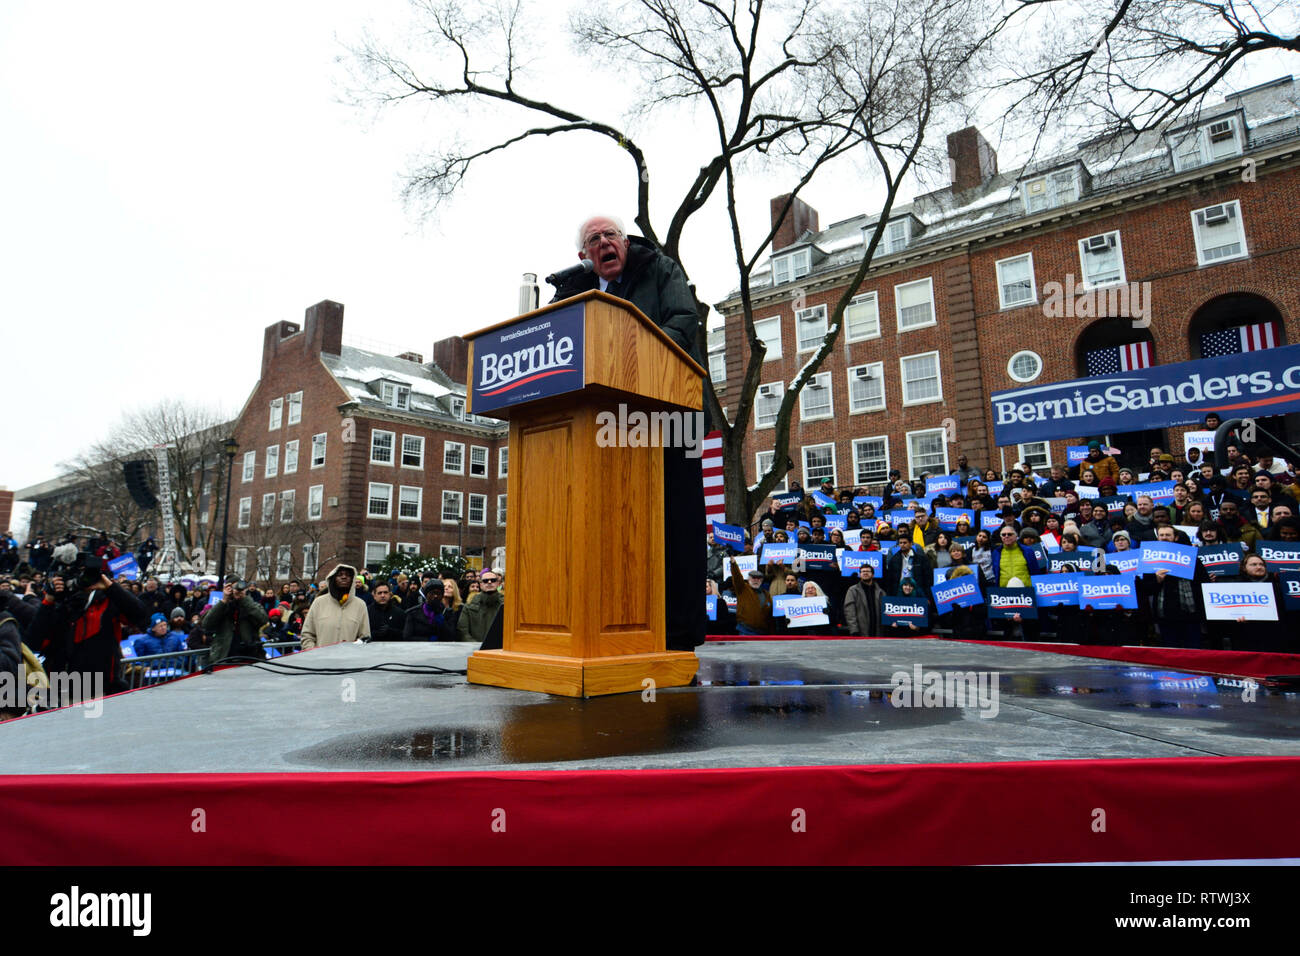 New York, NY, USA. 2nd March, 2019. Bernie Sanders, Independent US Senator from Vermont speaks on stage as he kicks-off his campaign for the 2020 U.S. Presidential Elections on a Democratic ticket at a rally at Brooklyn College, in Brooklyn, NY on March 2, 2019. Credit: OOgImages/Alamy Live News - Stock Image